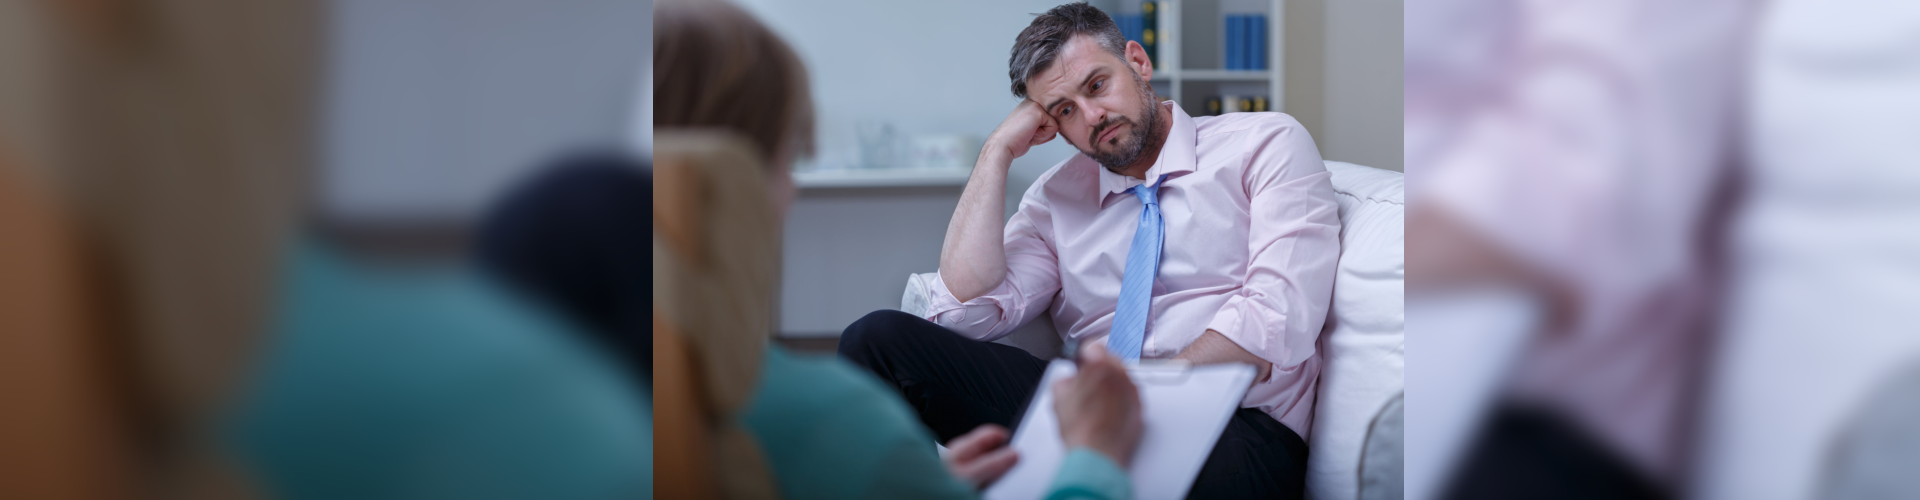 despair businessman having psychotherapy